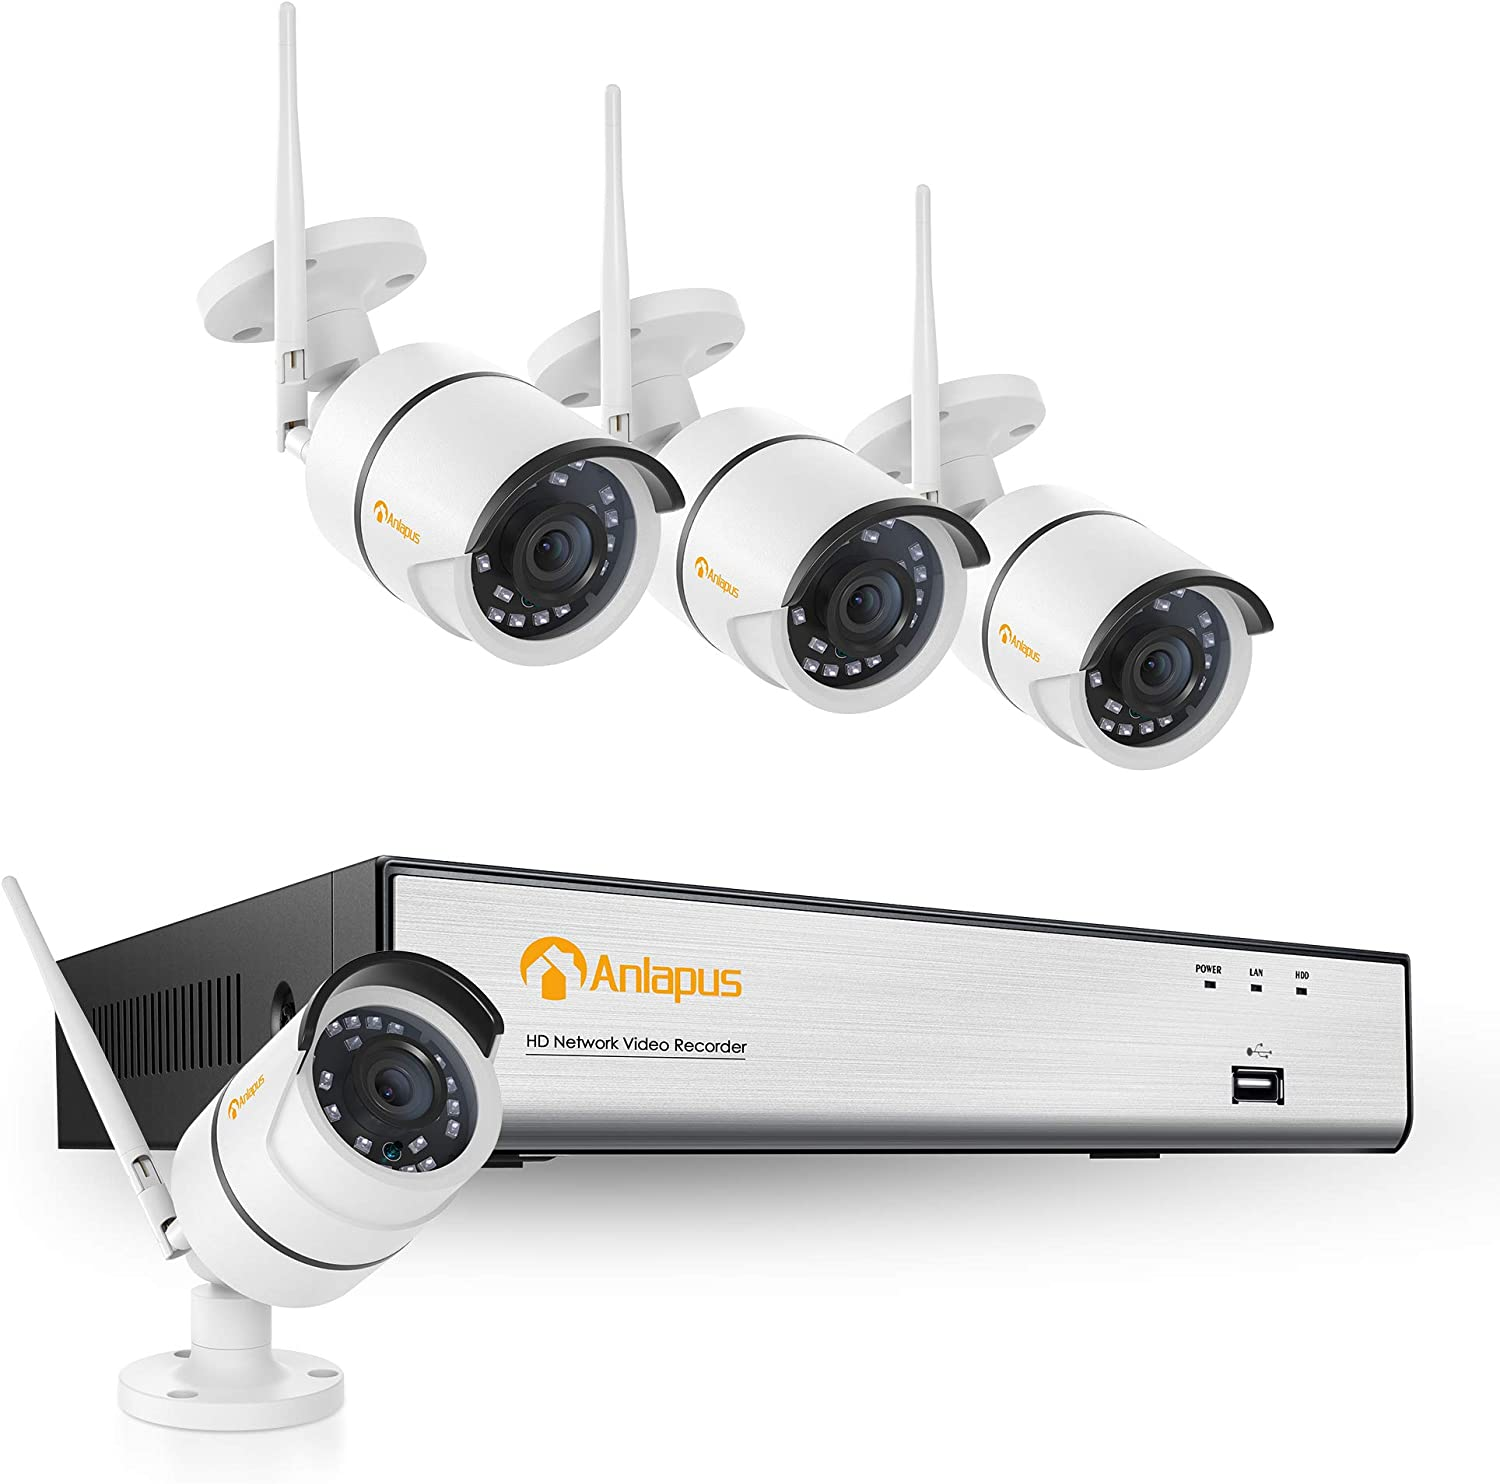 Anlapus H.265+ 1080p Security Camera System Wireless, 4pcs 2MP HD Outdoor Indoor Wireless Home Security IP Cameras, 8 Channel WiFi NVR Video Surveillance System with Night Vision(No Hard Drive)